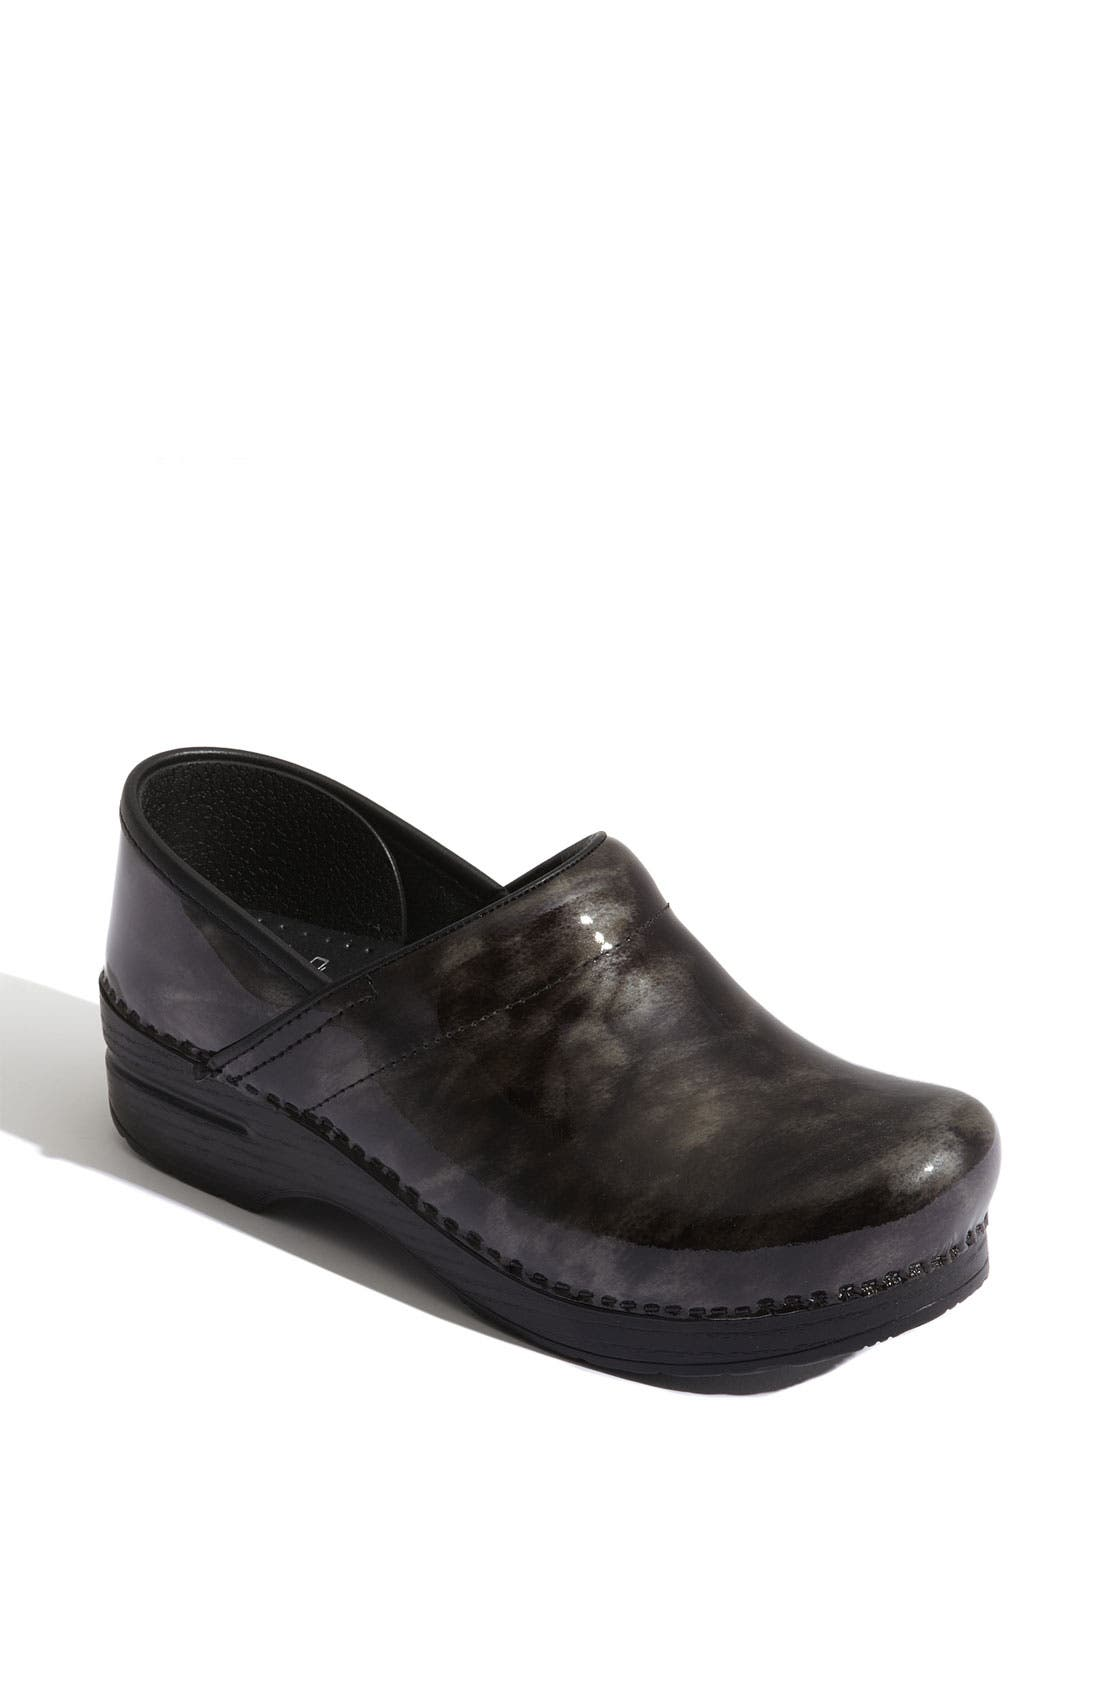 Alternate Image 1 Selected - Dansko 'Professional' Marbled Patent Leather Clog (Special Purchase)